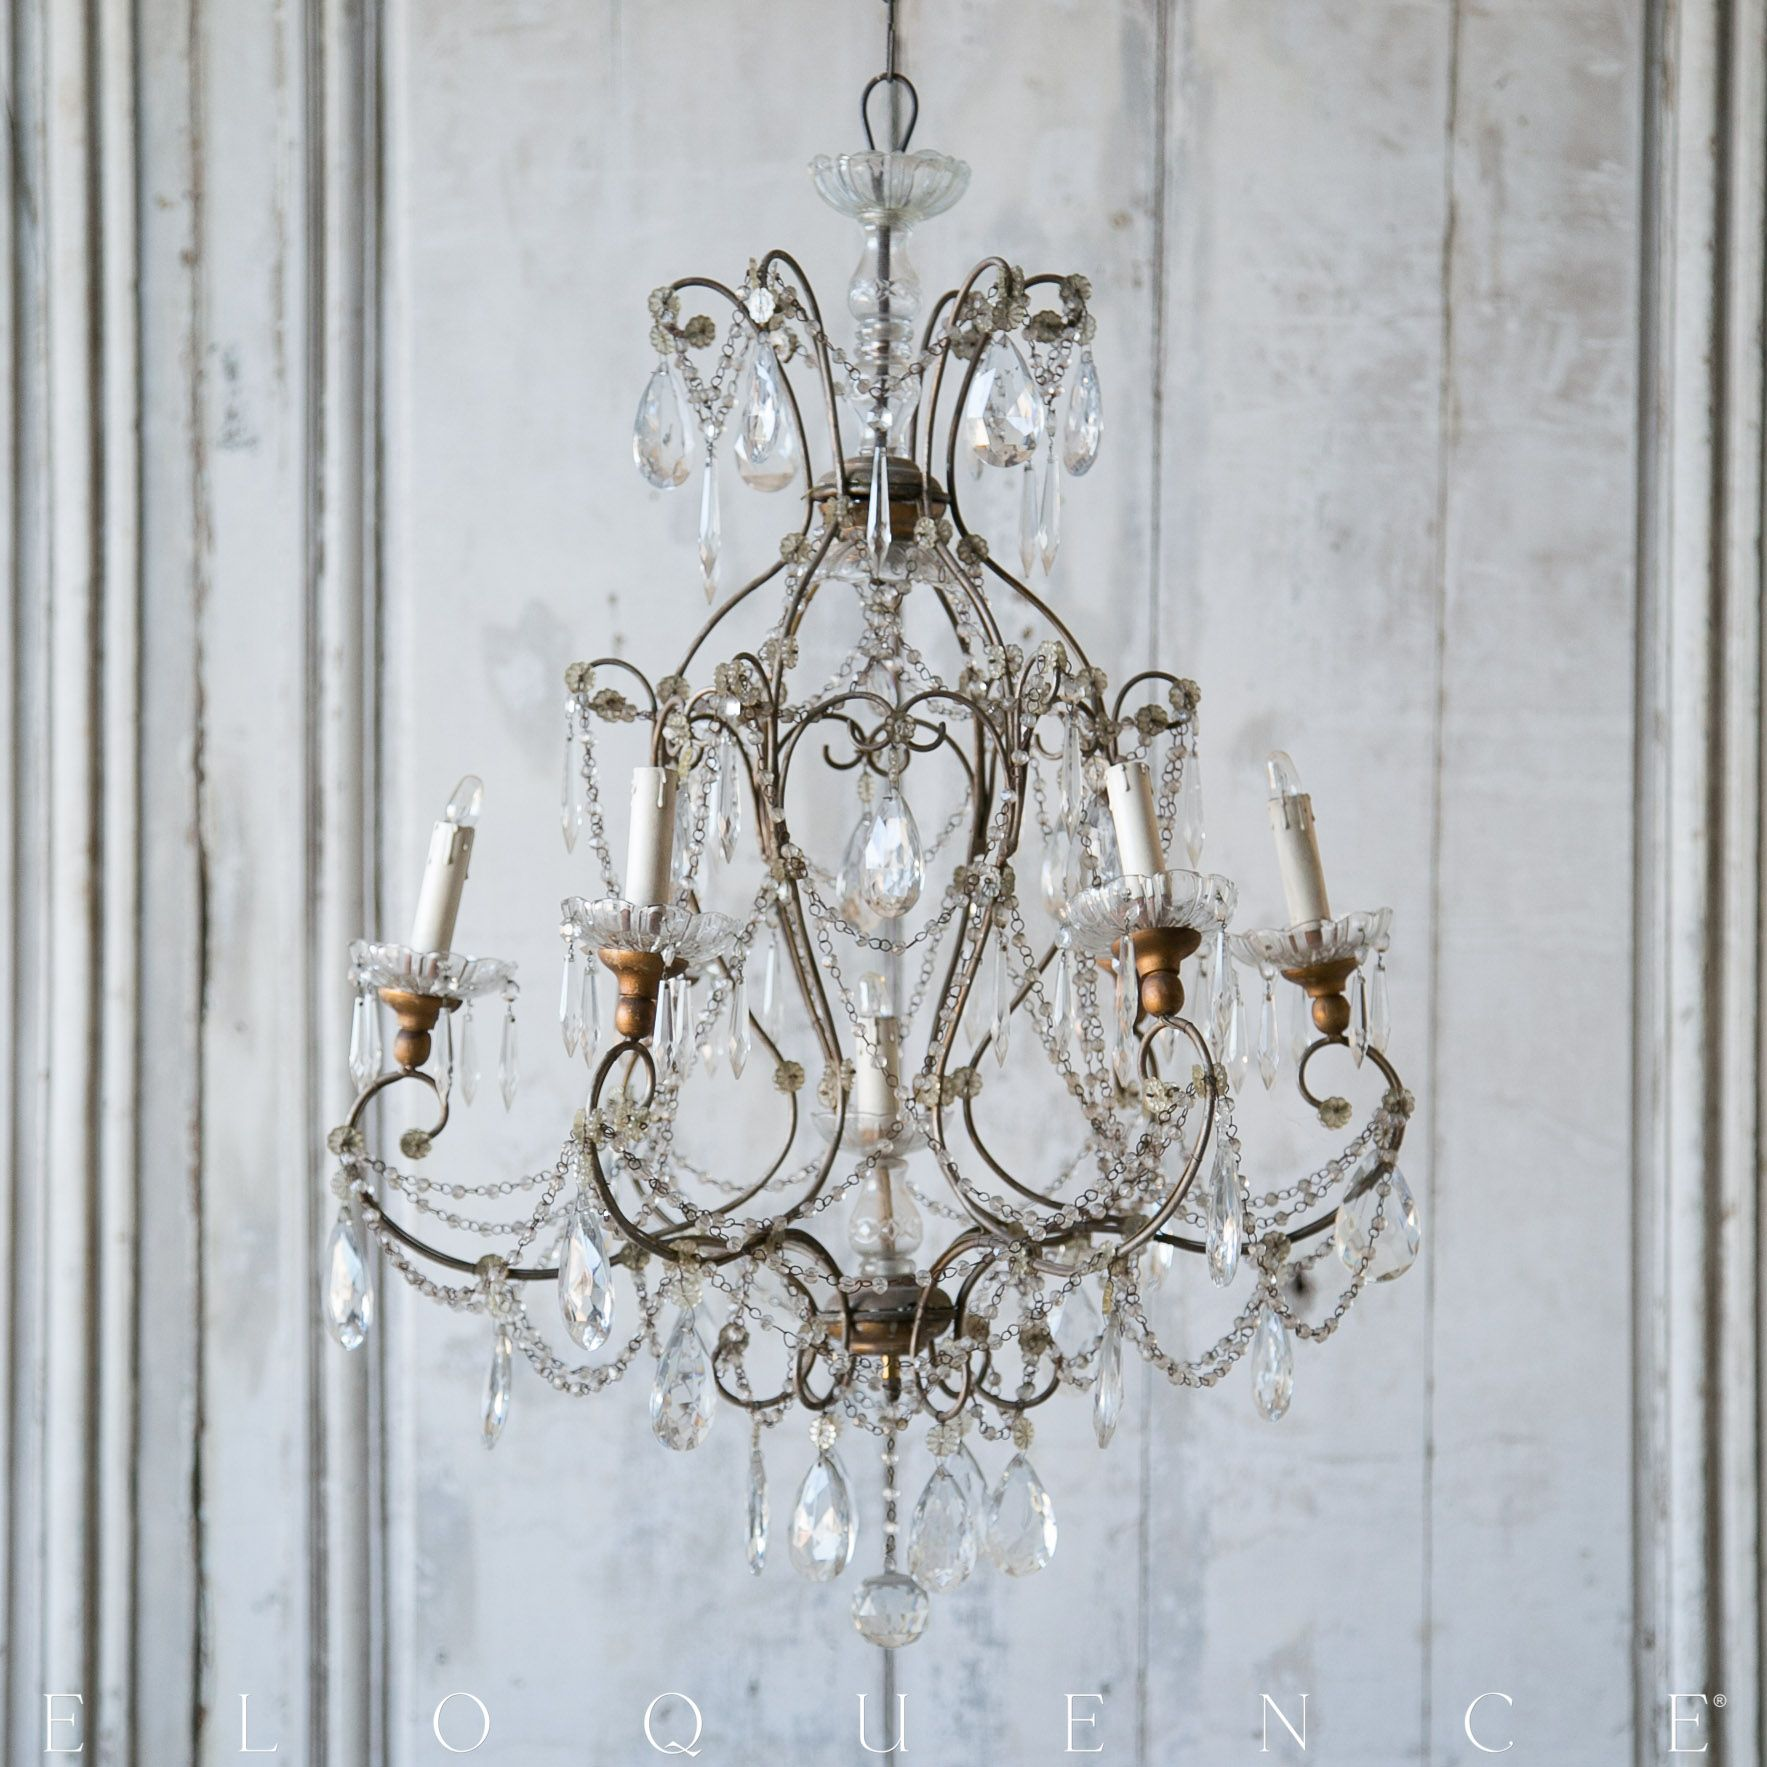 Eloquence inc antique italian chandelier 1890 antique italian eloquence inc antique italian chandelier 1890 antique italian crystal chandelier with 6 aloadofball Gallery